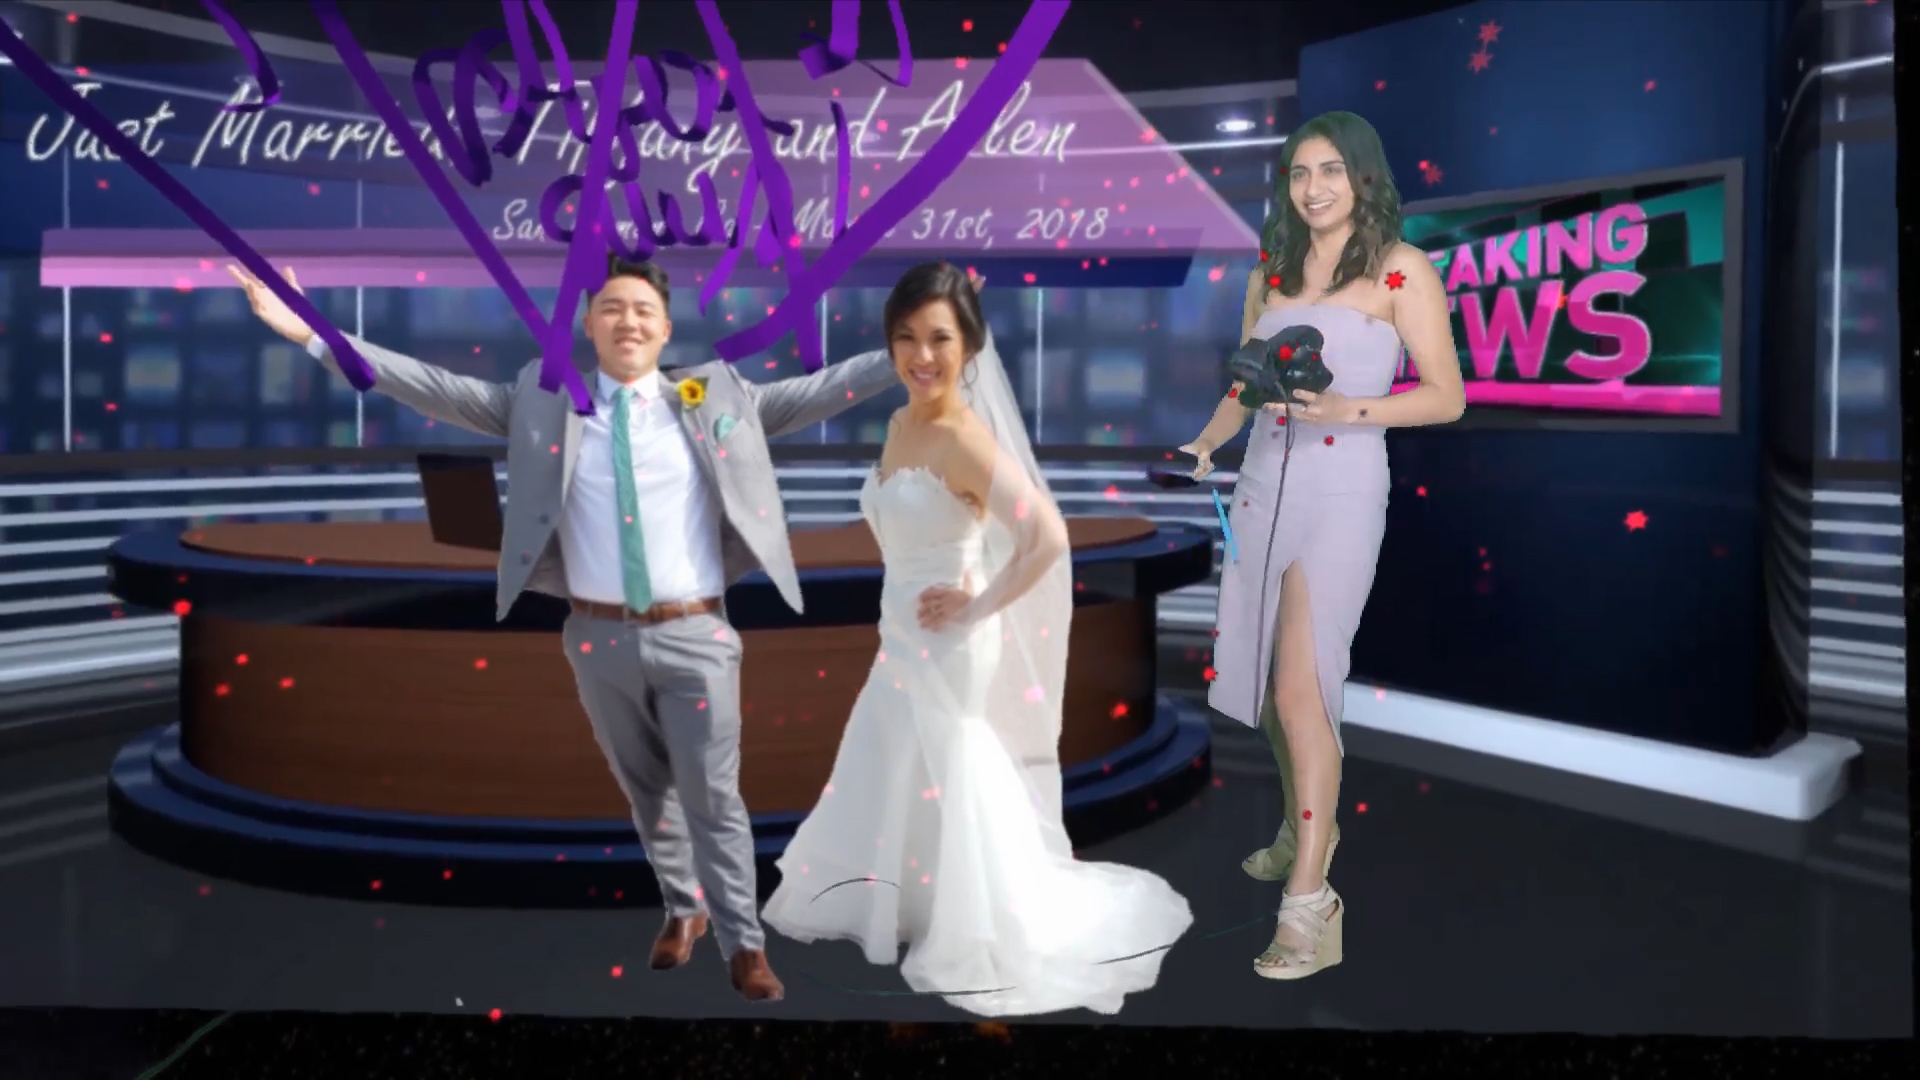 woman-tall-white-dress-newsroom-virtual-reality-guestbook.jpg